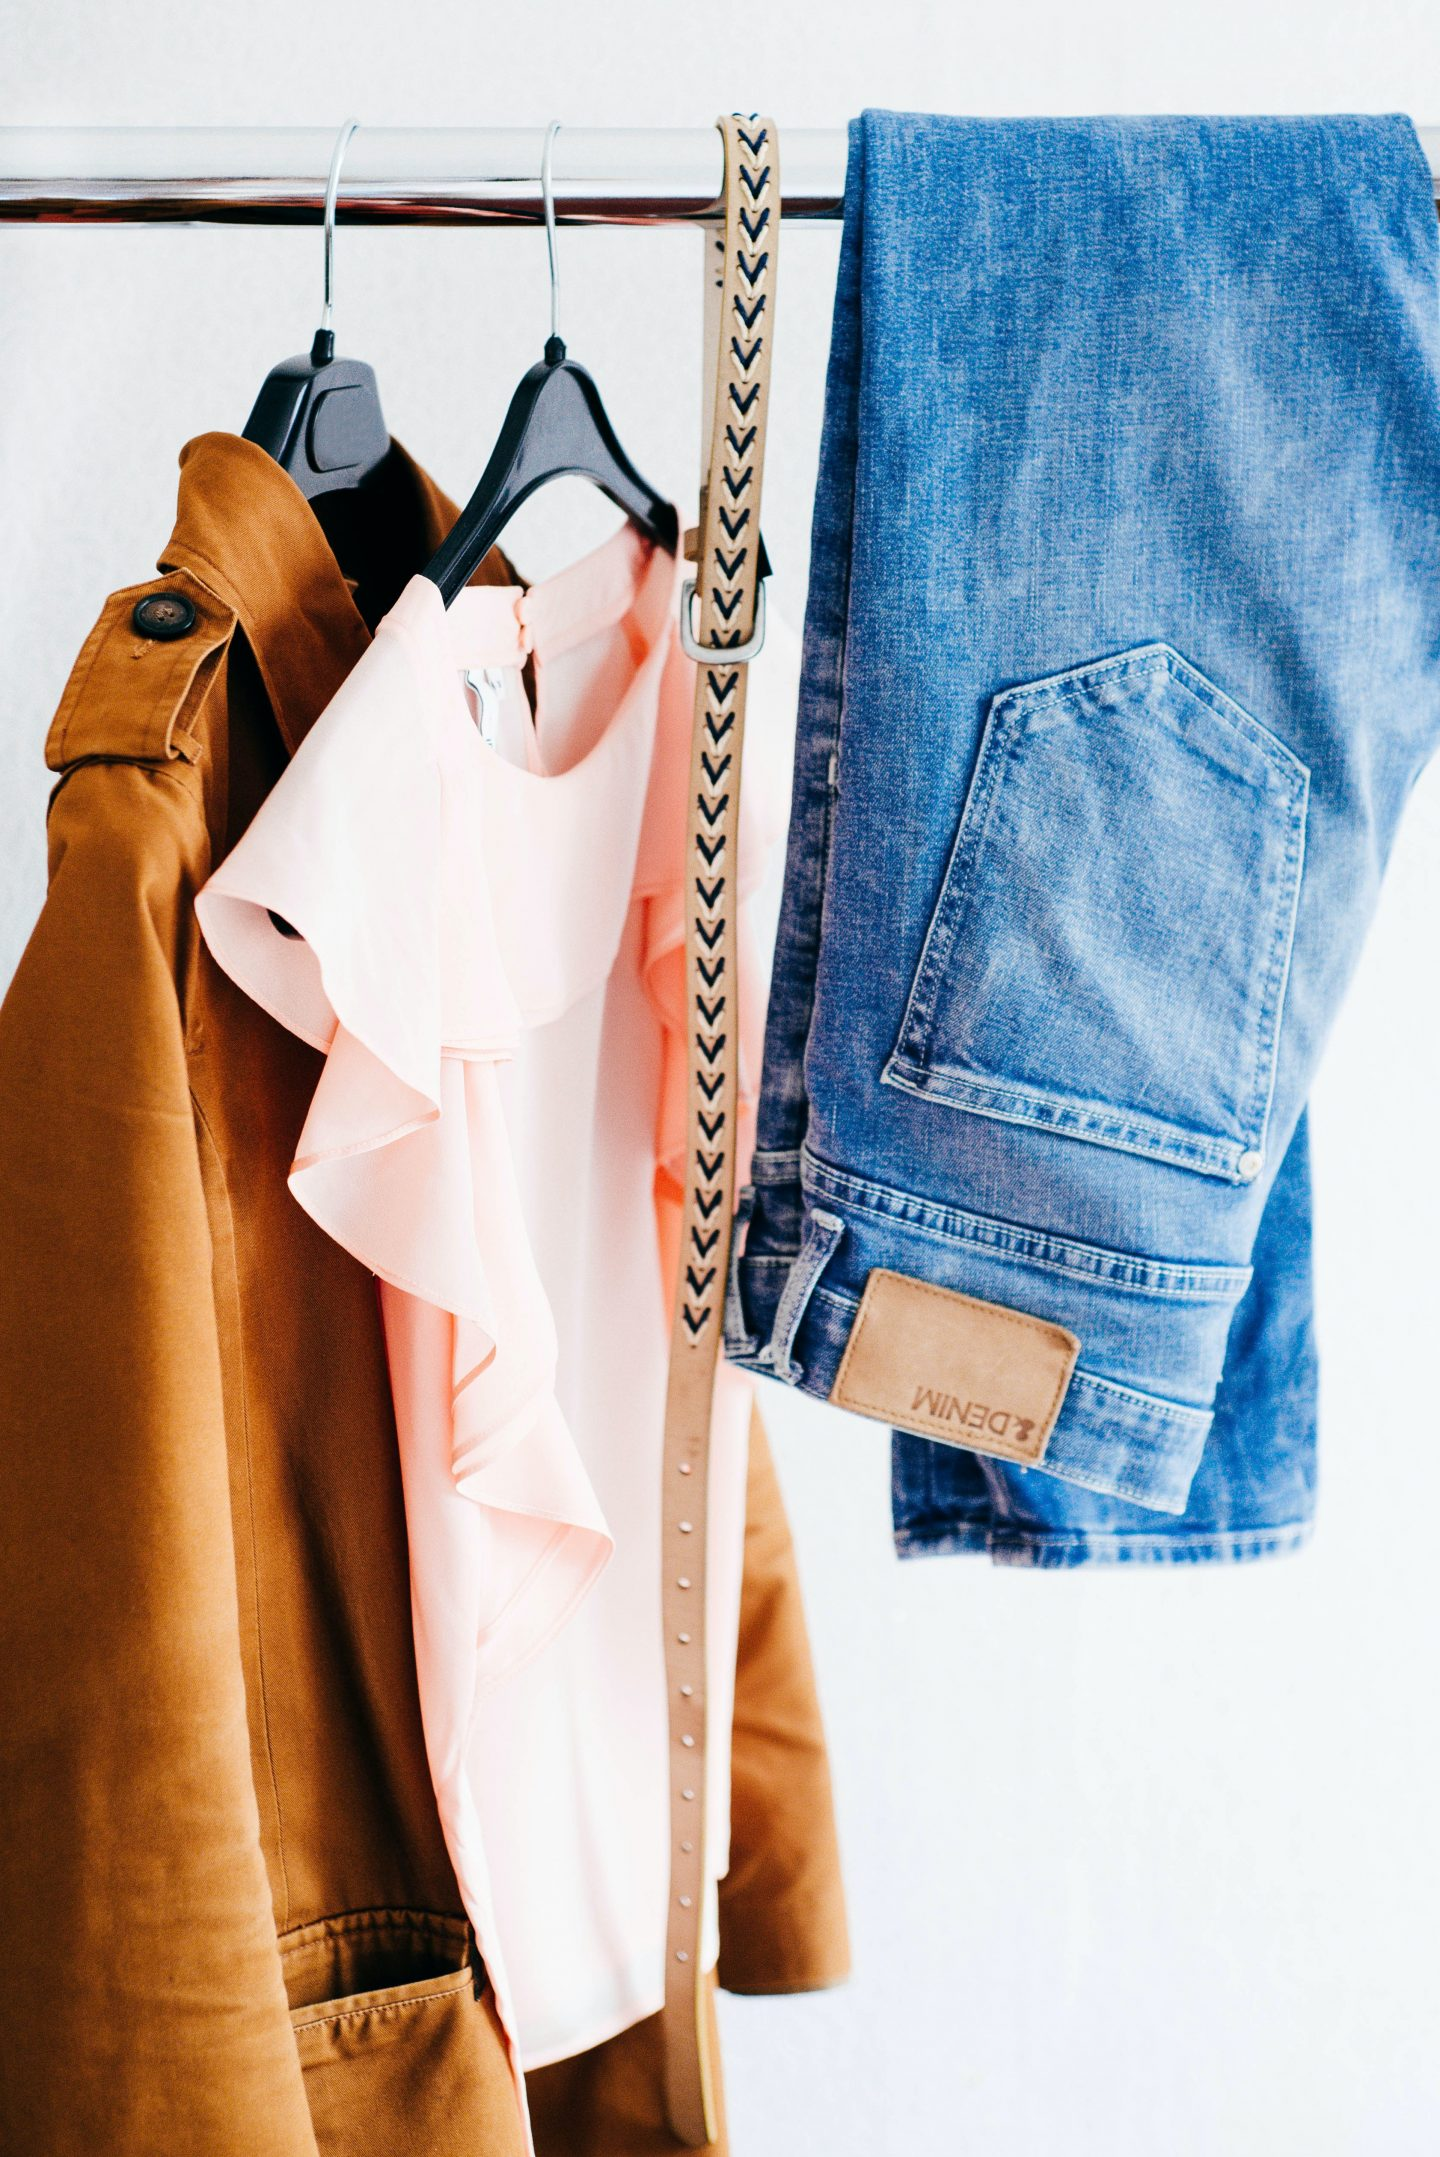 creating new outfits with vintage cothes, brown jacket, white shirt, gold belt and blue jeans